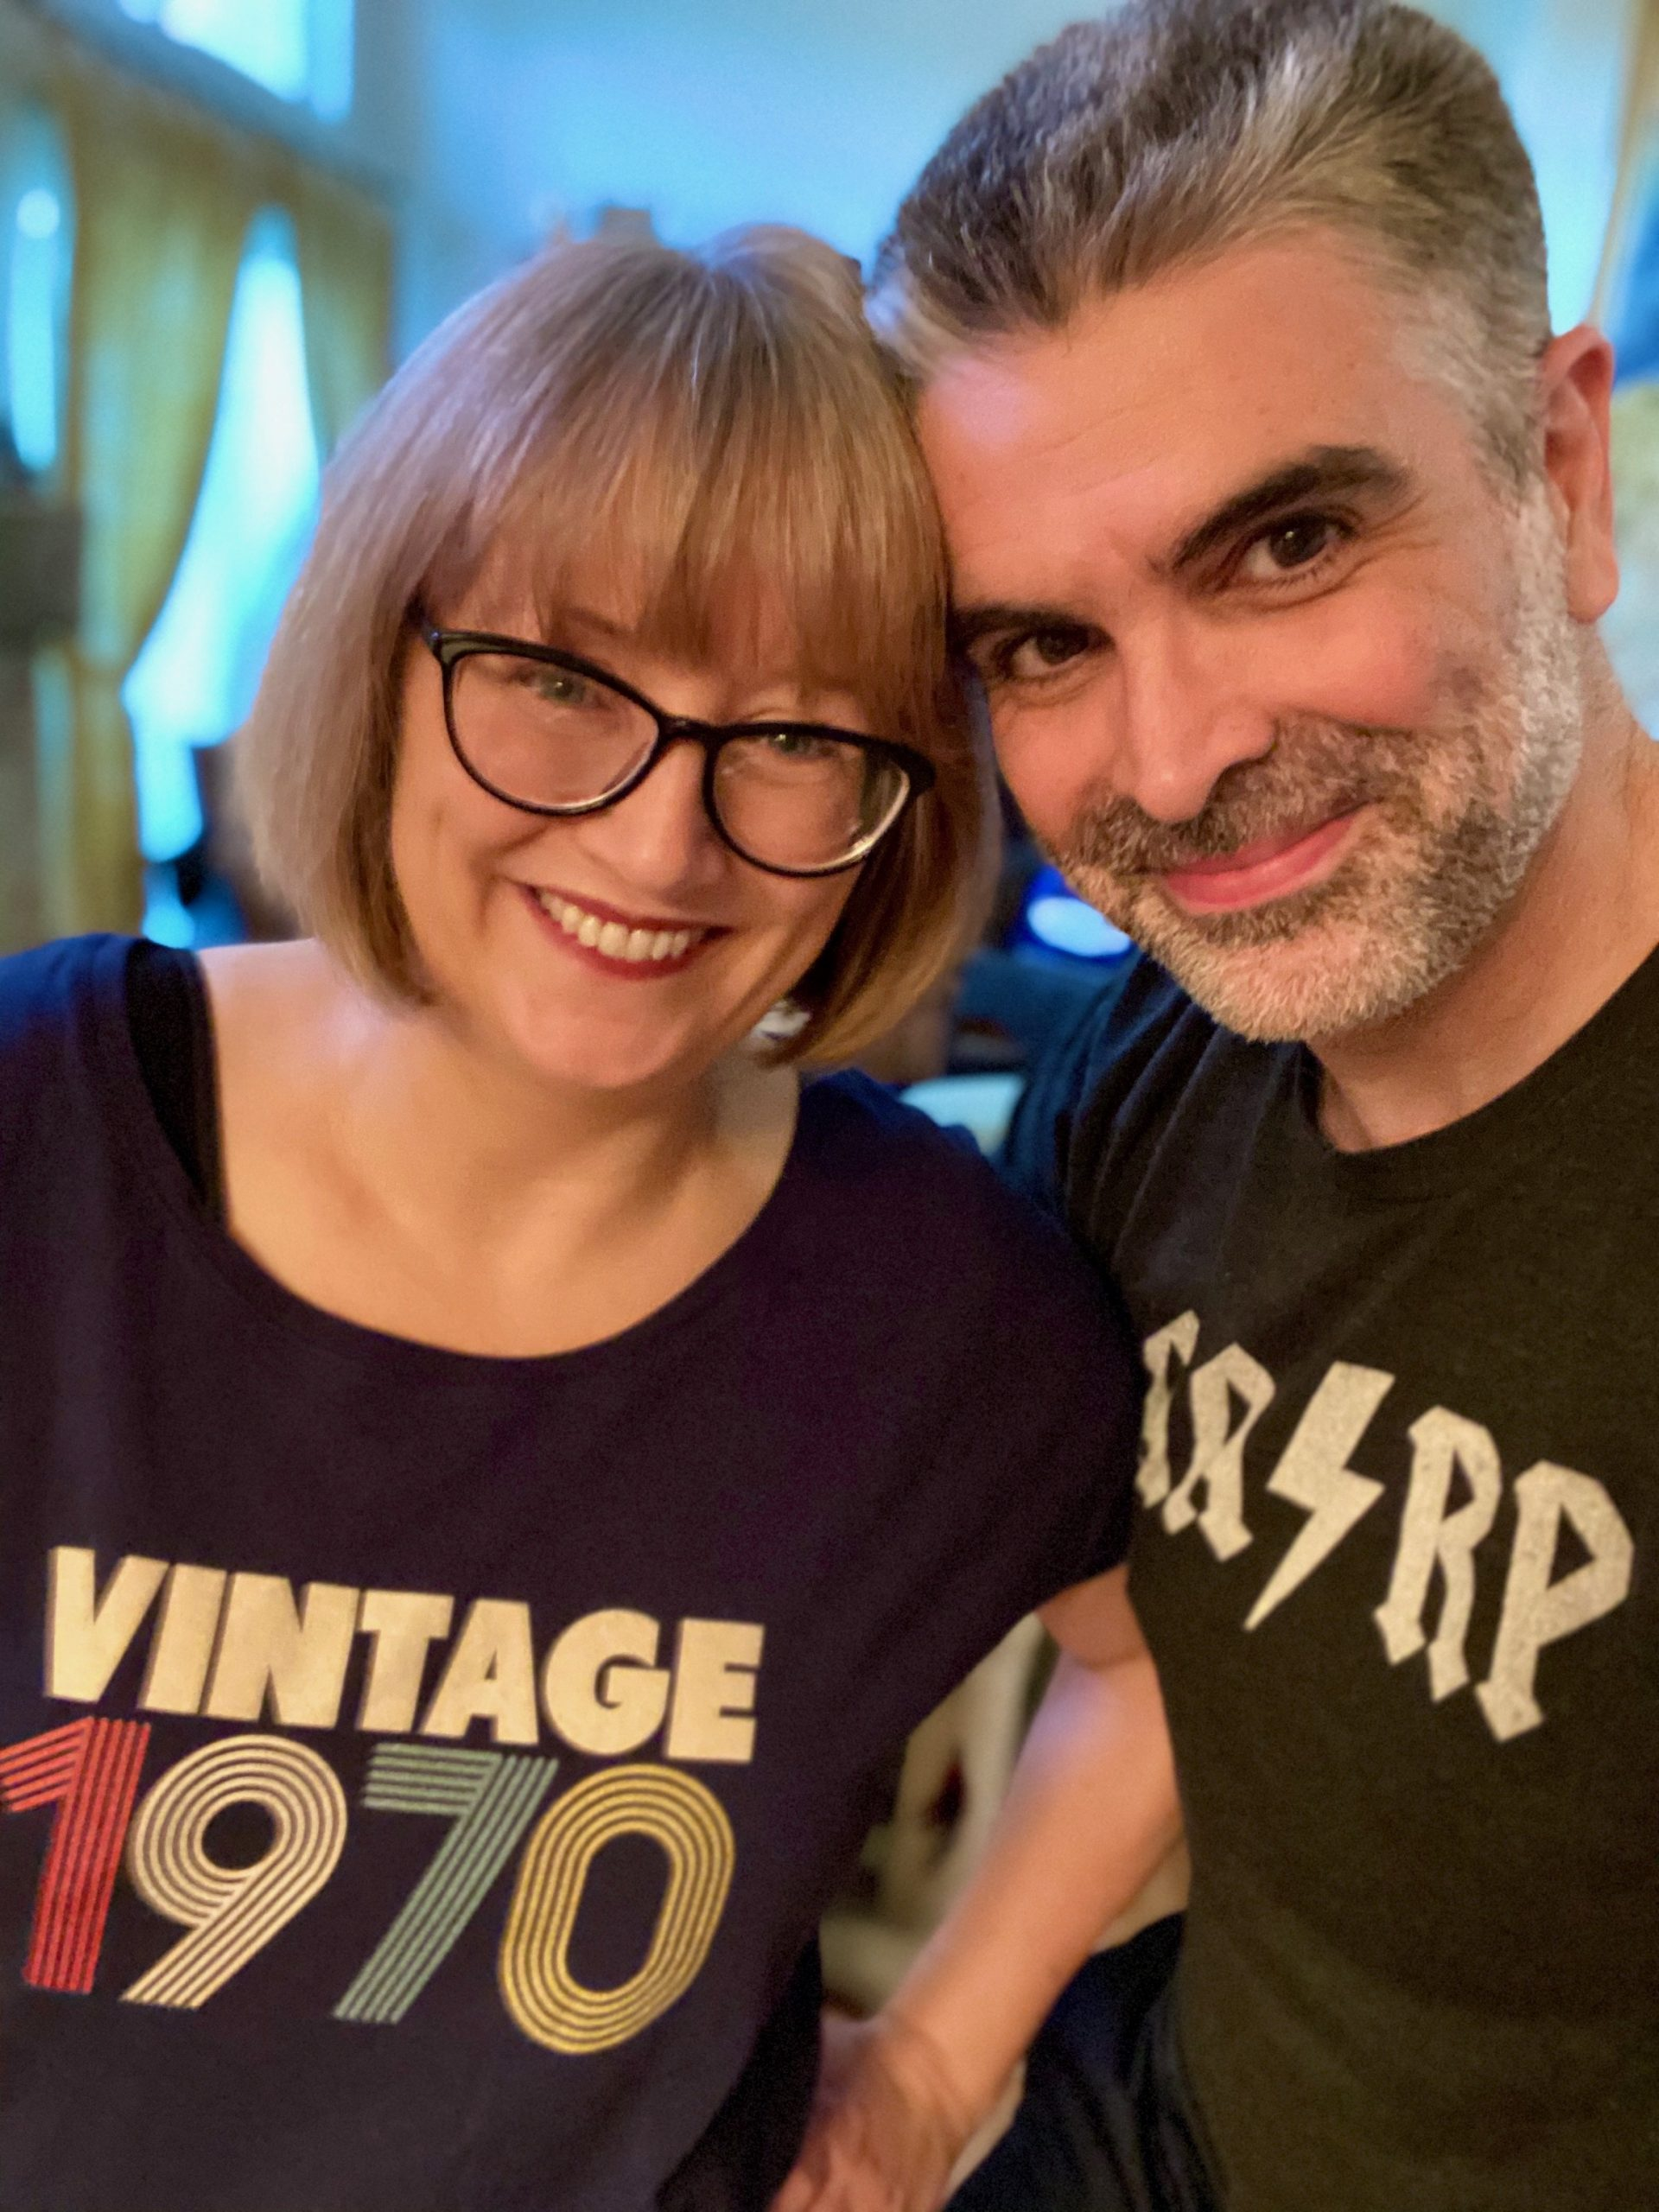 An Interview with Co-Creators John & Lotti Knowles, Chastity Bites